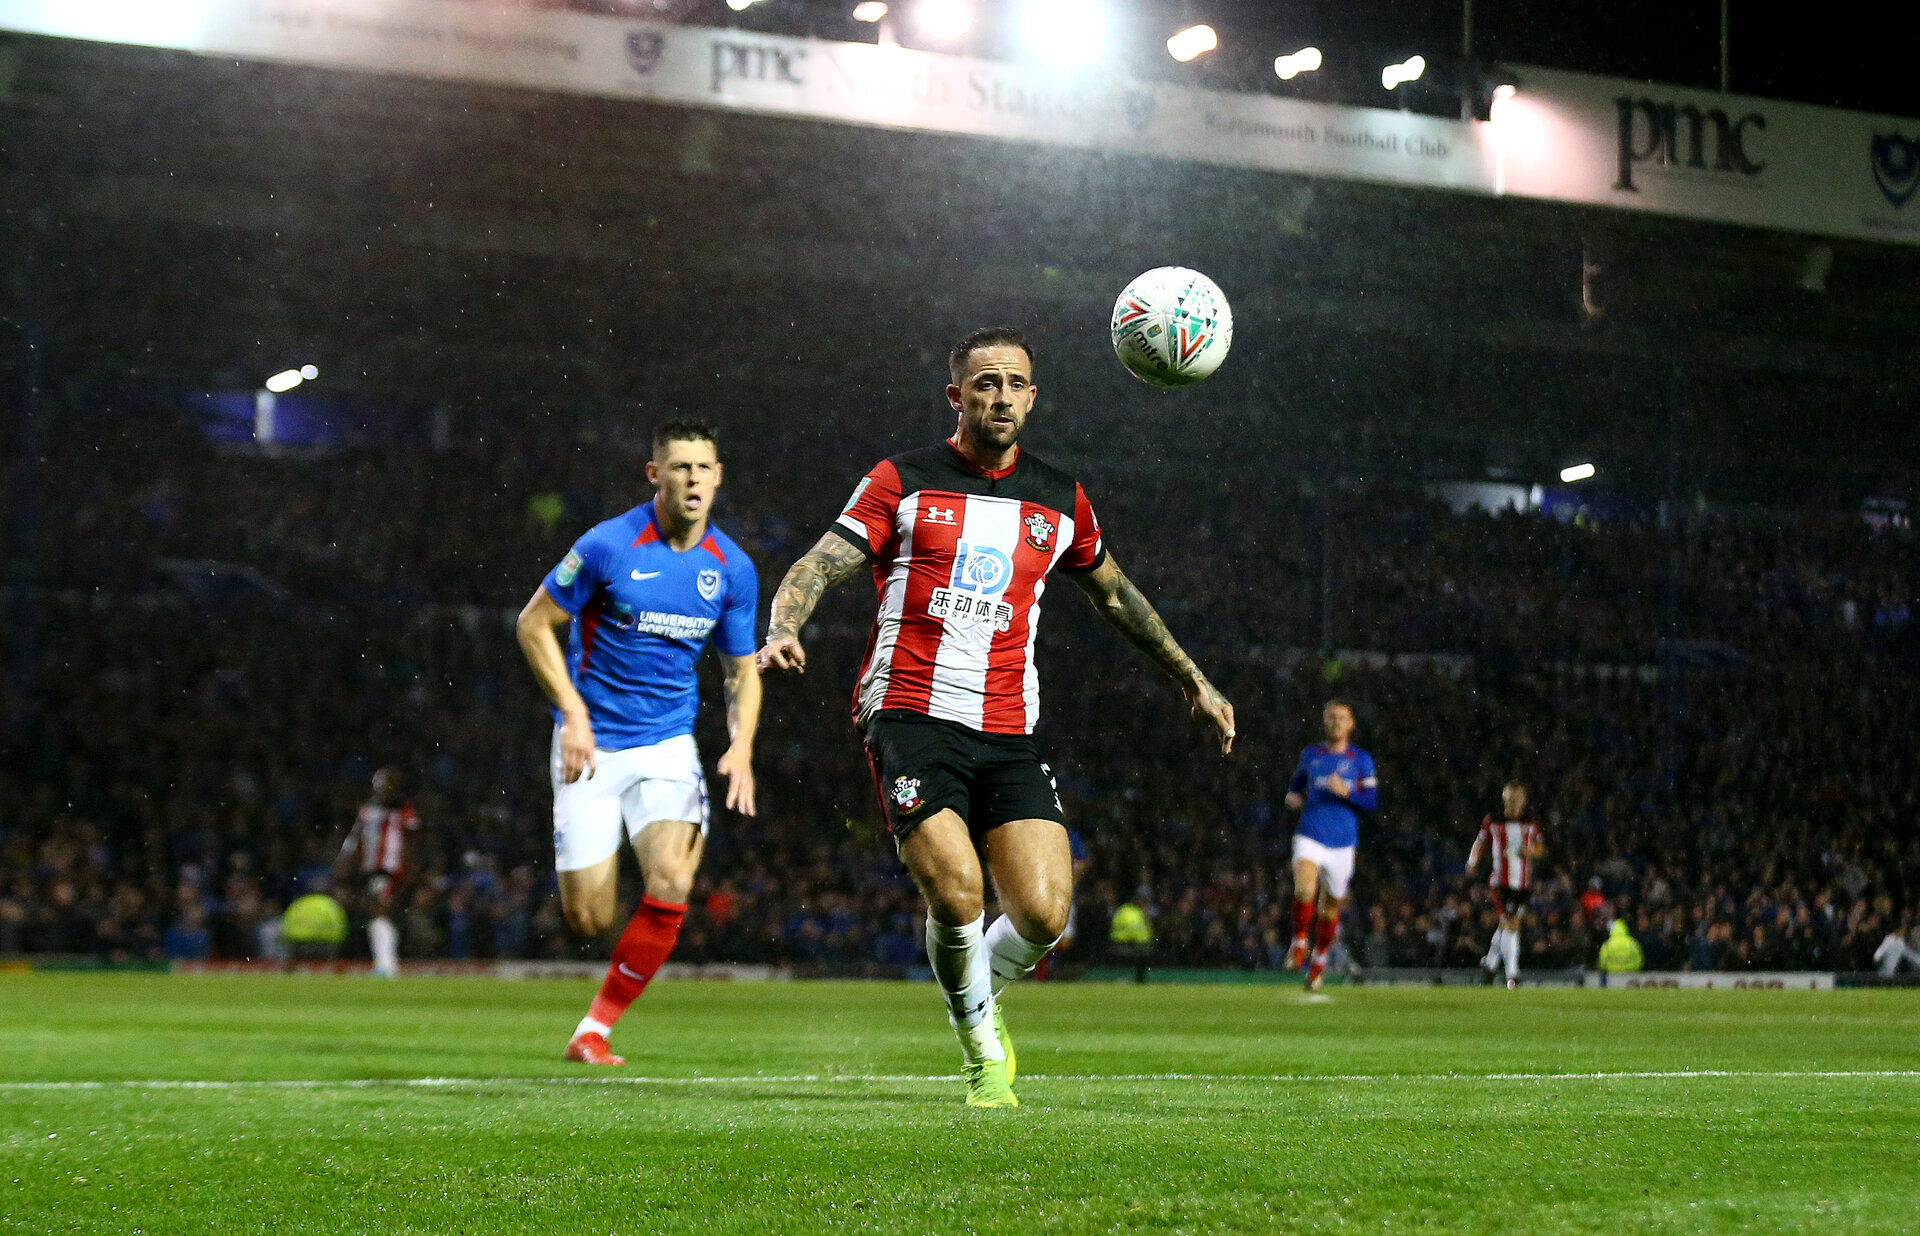 PORTSMOUTH, ENGLAND - SEPTEMBER 24: Danny Ingsof Southampton during the Carabao Cup Third Round match between Portsmouth and Southampton at Fratton Park on September 24, 2019 in Portsmouth, England. (Photo by Matt Watson/Southampton FC via Getty Images)